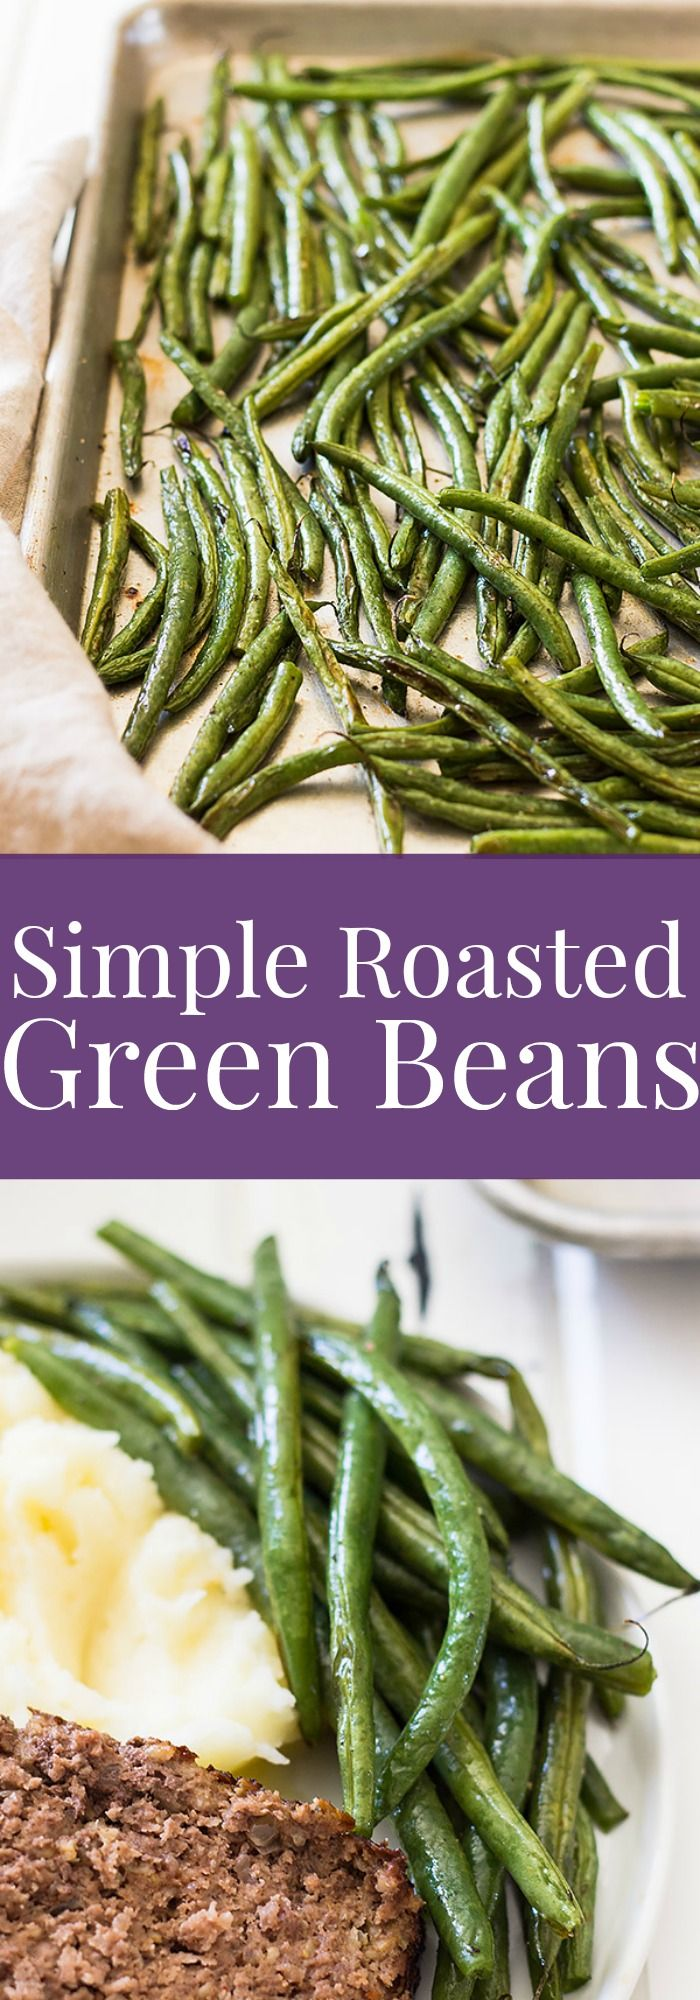 These Simple Roasted Green Beans are a really quick side dish that will add nutrition to any meal!   www.countrysidecravings.com